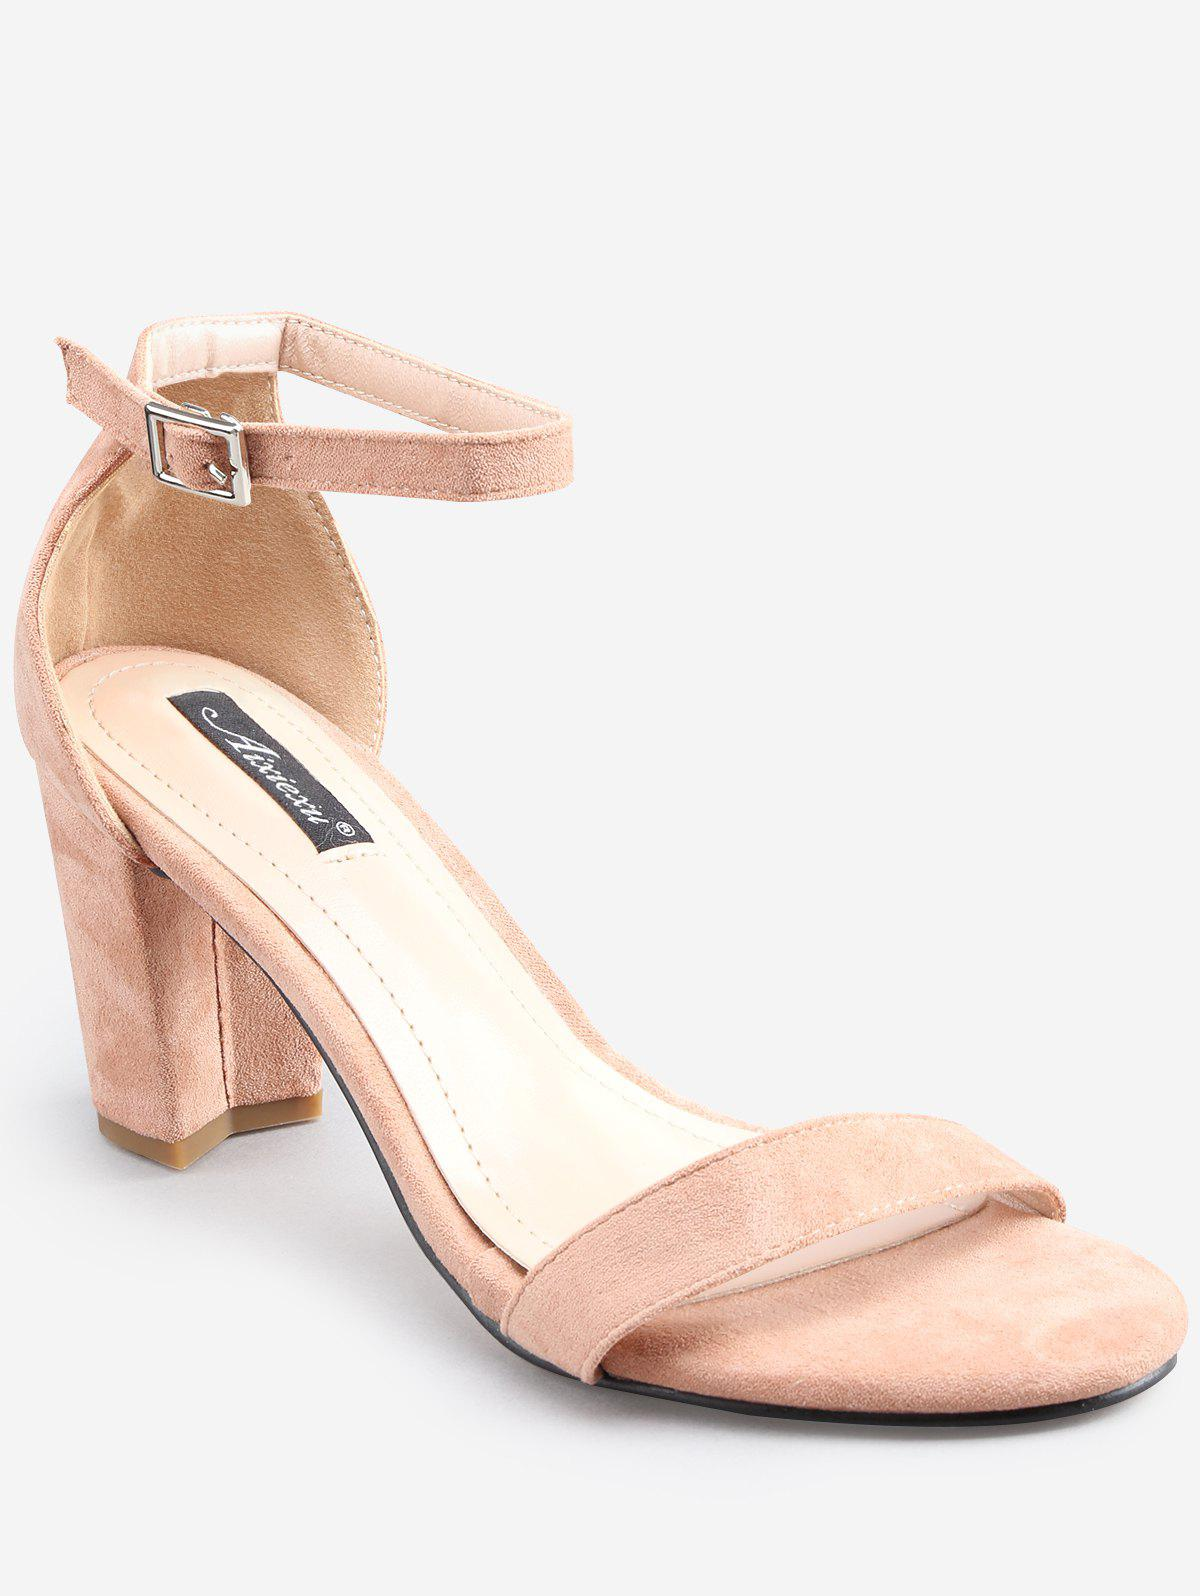 f377a38e7 2019 Chunky Heel Leisure One Strap Ankle Strap Sandals